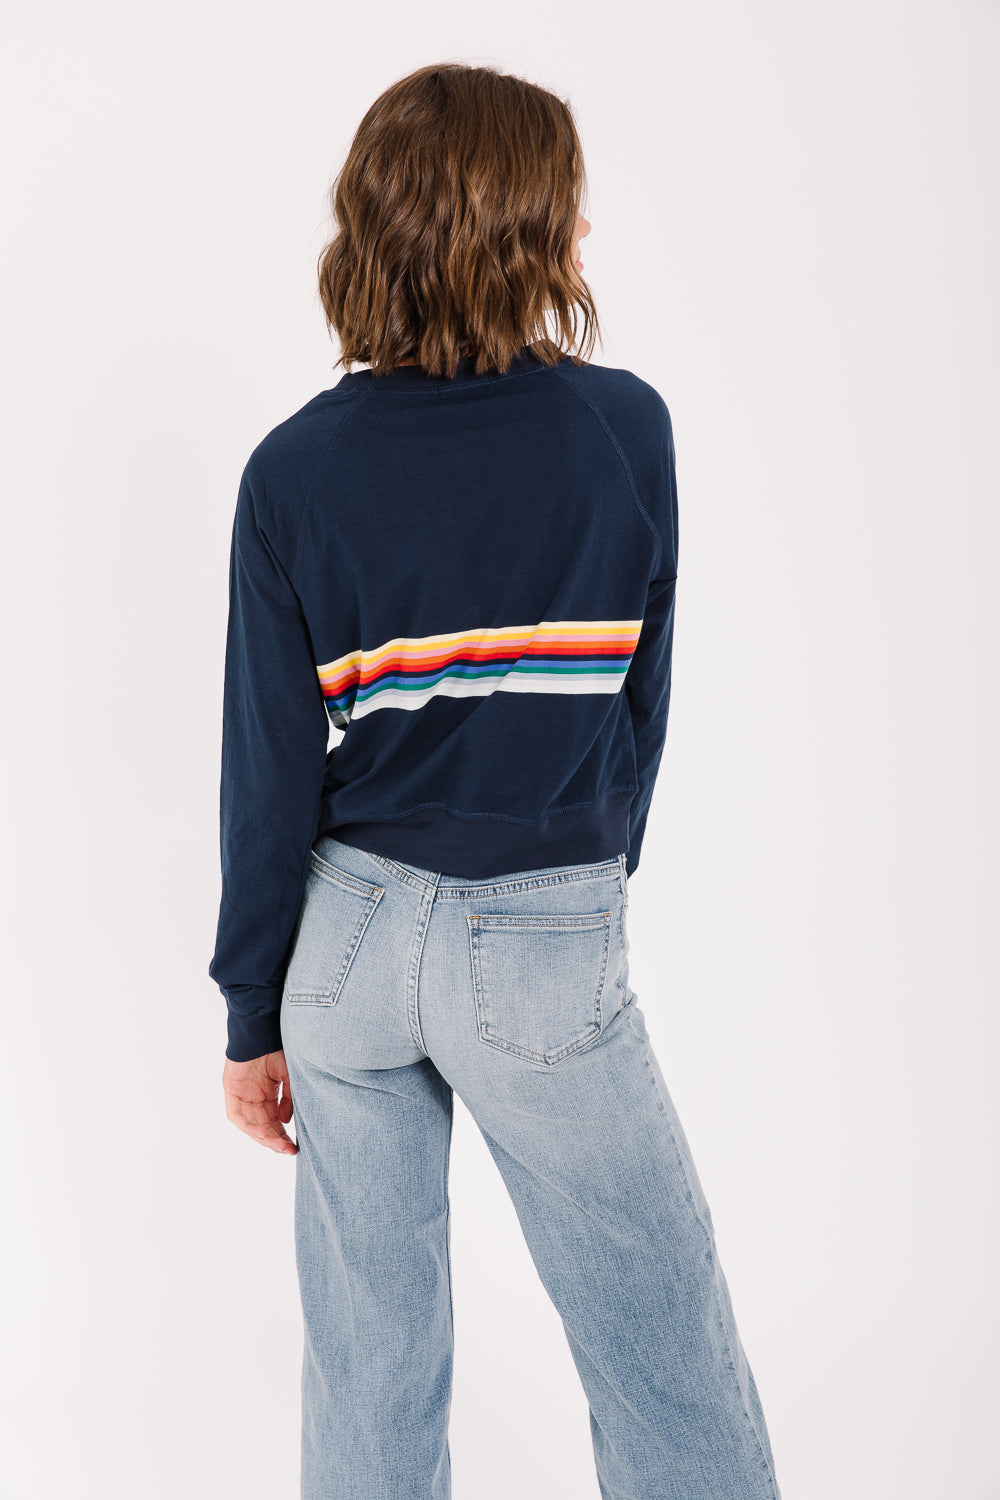 The Jackson Striped Crew Neck in Navy